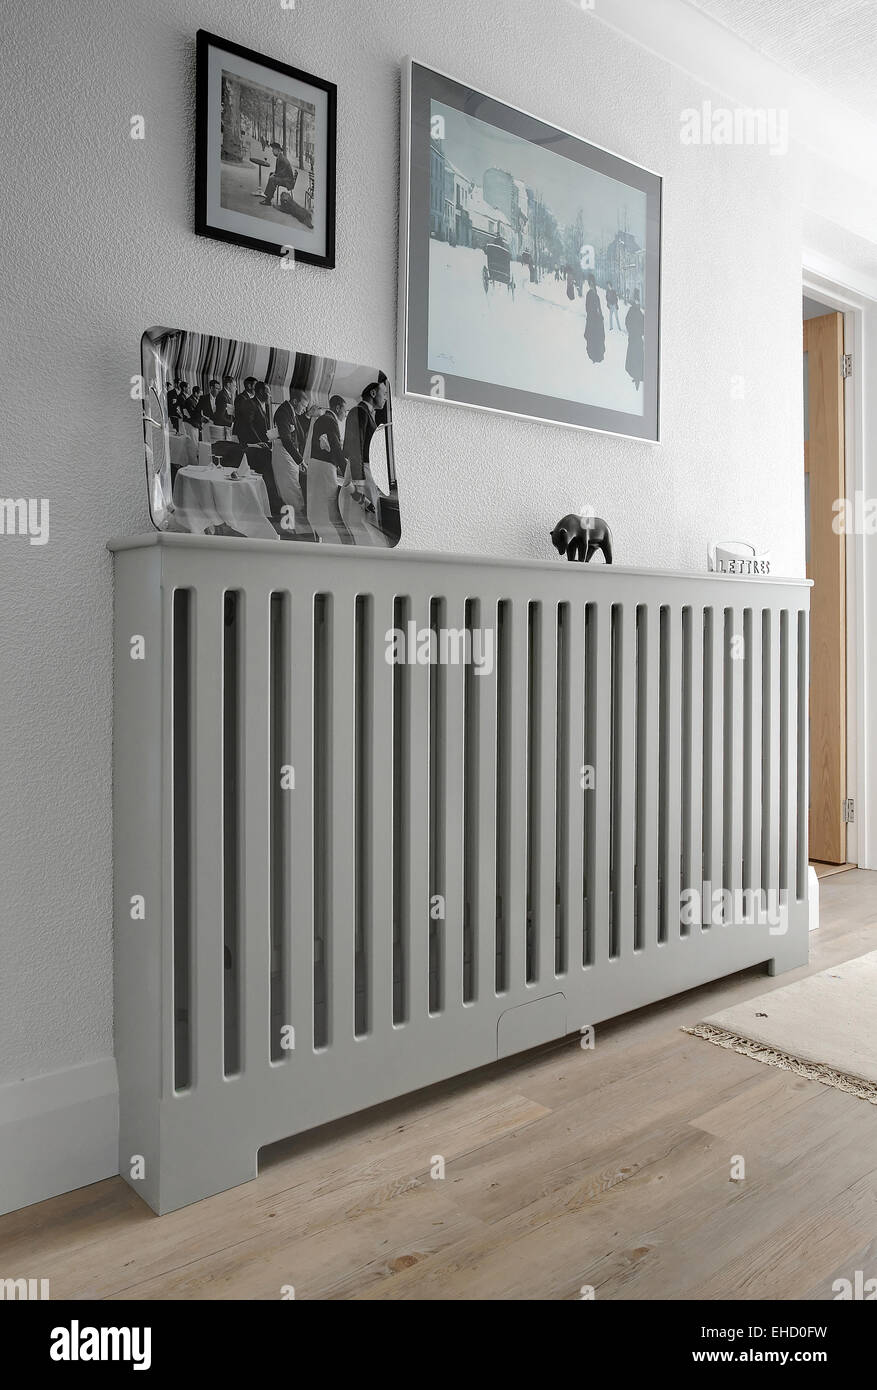 A Wooden Radiator Cover Hiding A Radiator In A Hallway In A Uk Home Stock Photo Alamy